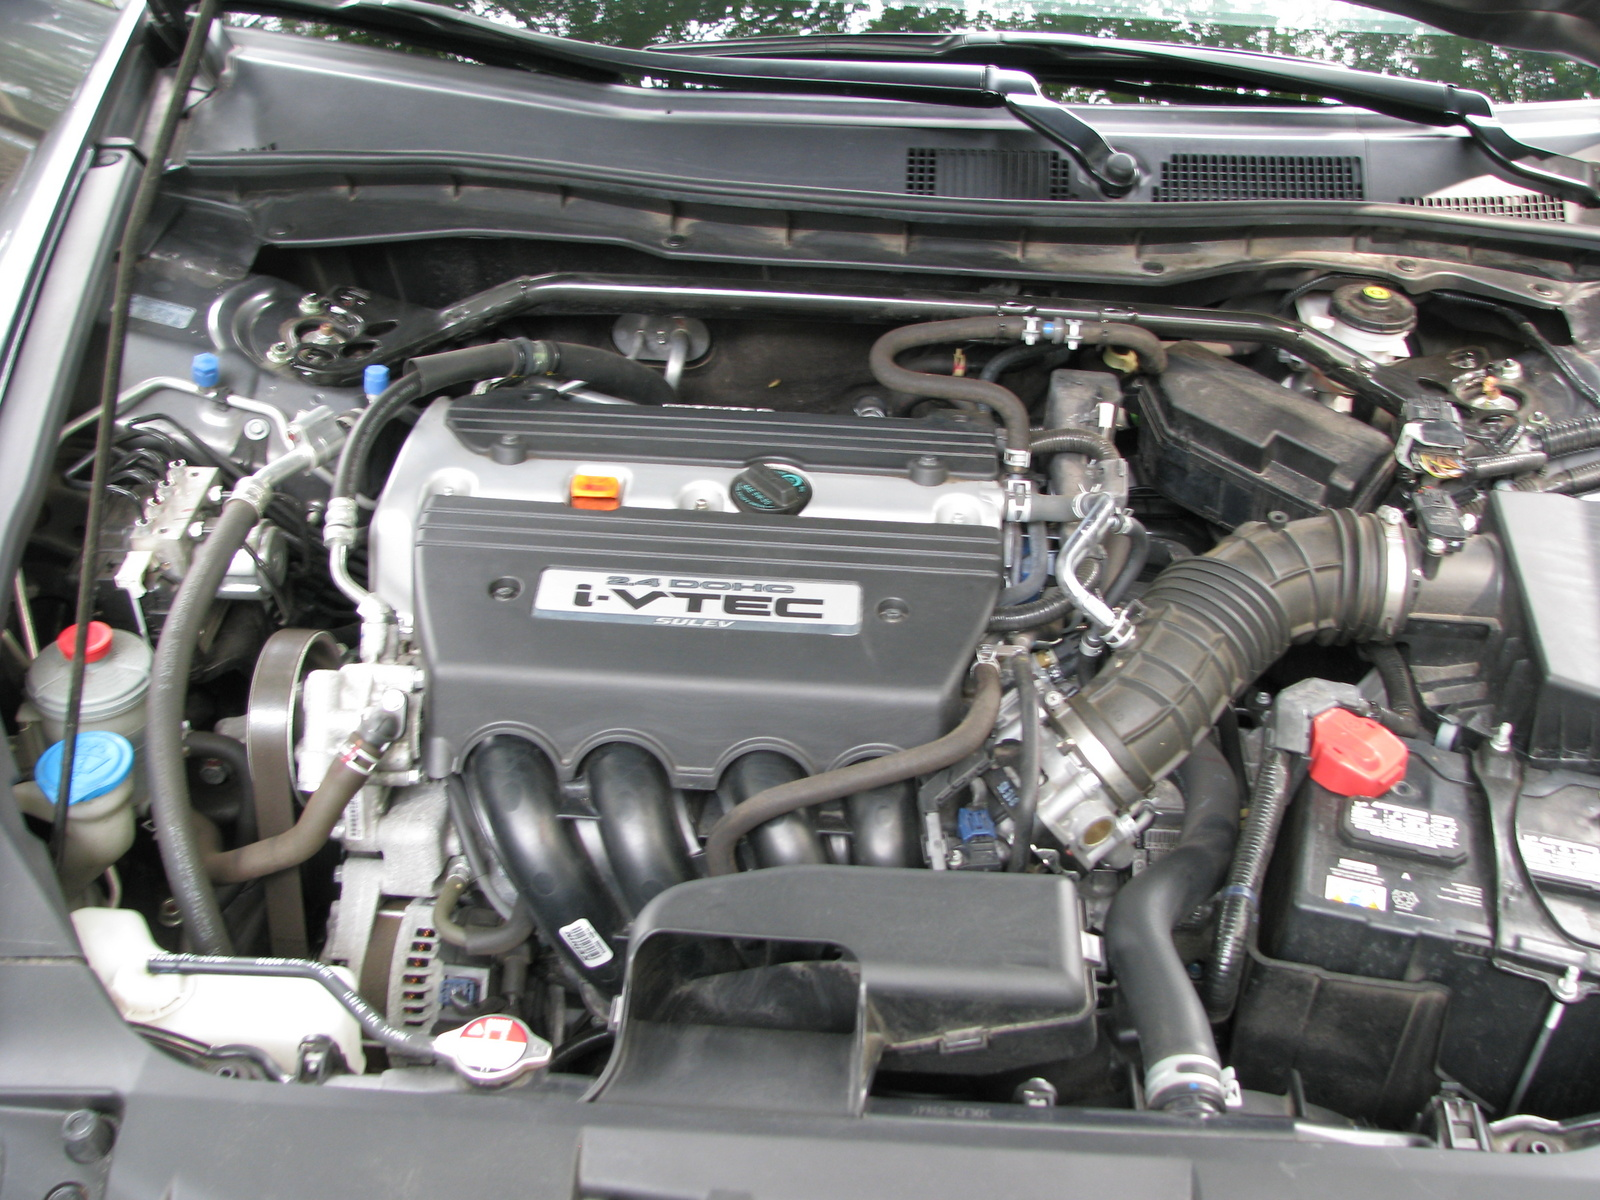 2008 honda accord engine specs. Black Bedroom Furniture Sets. Home Design Ideas